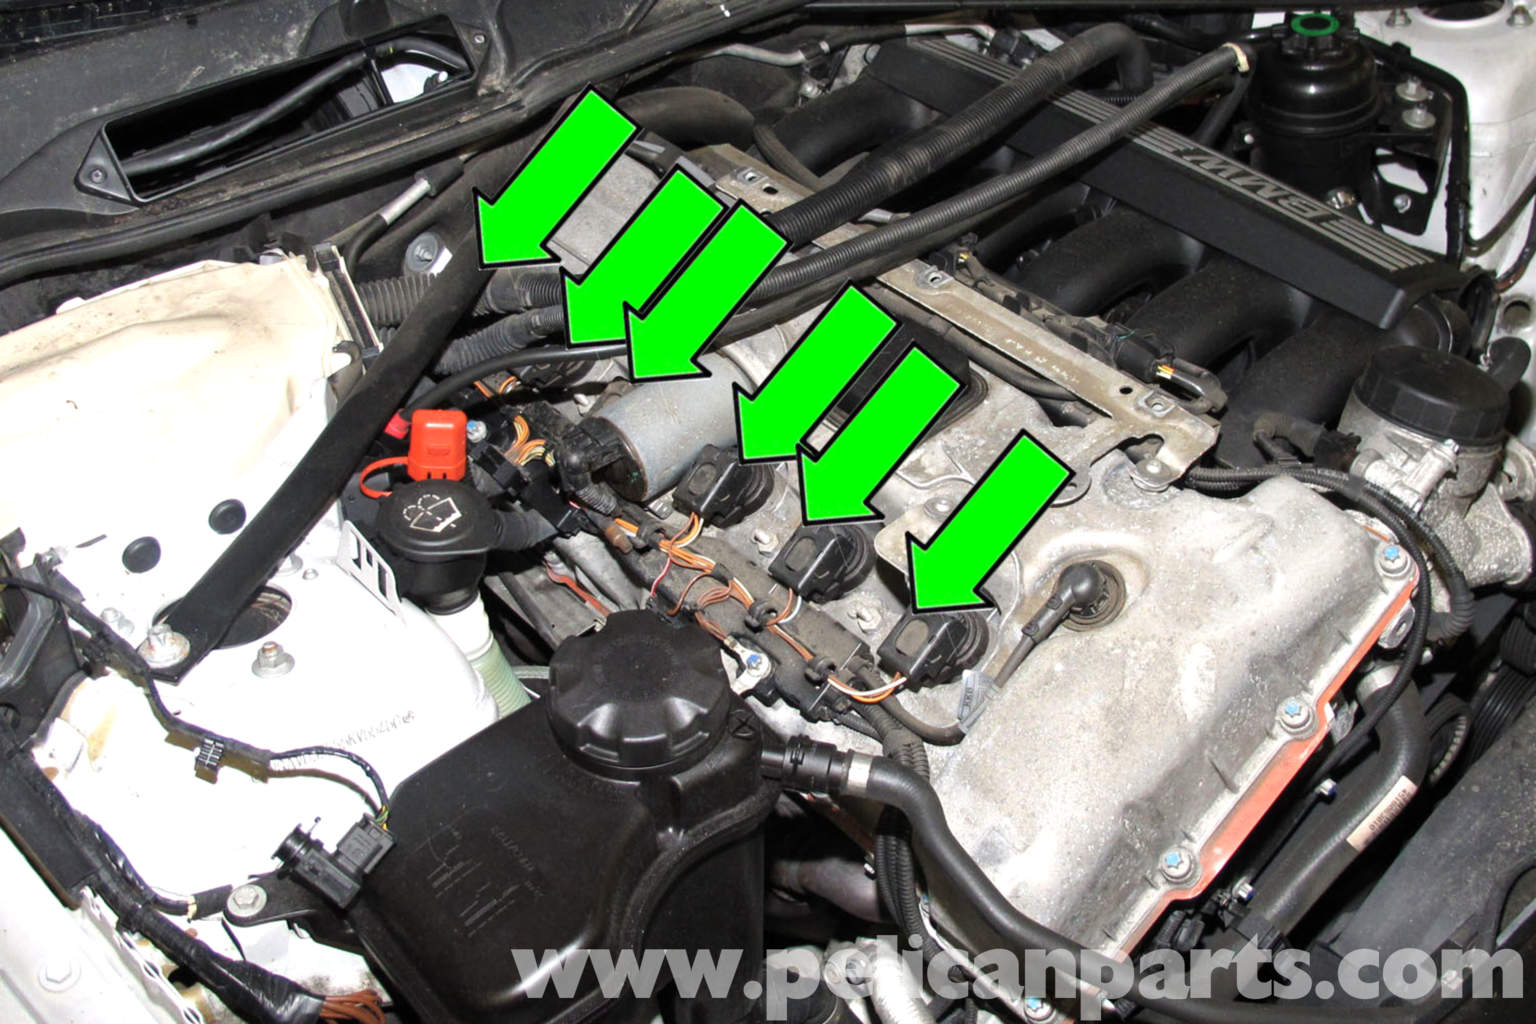 e53 fuse box location e70 fuse box location bmw e90 spark plug and coil replacement e91 e92 e93